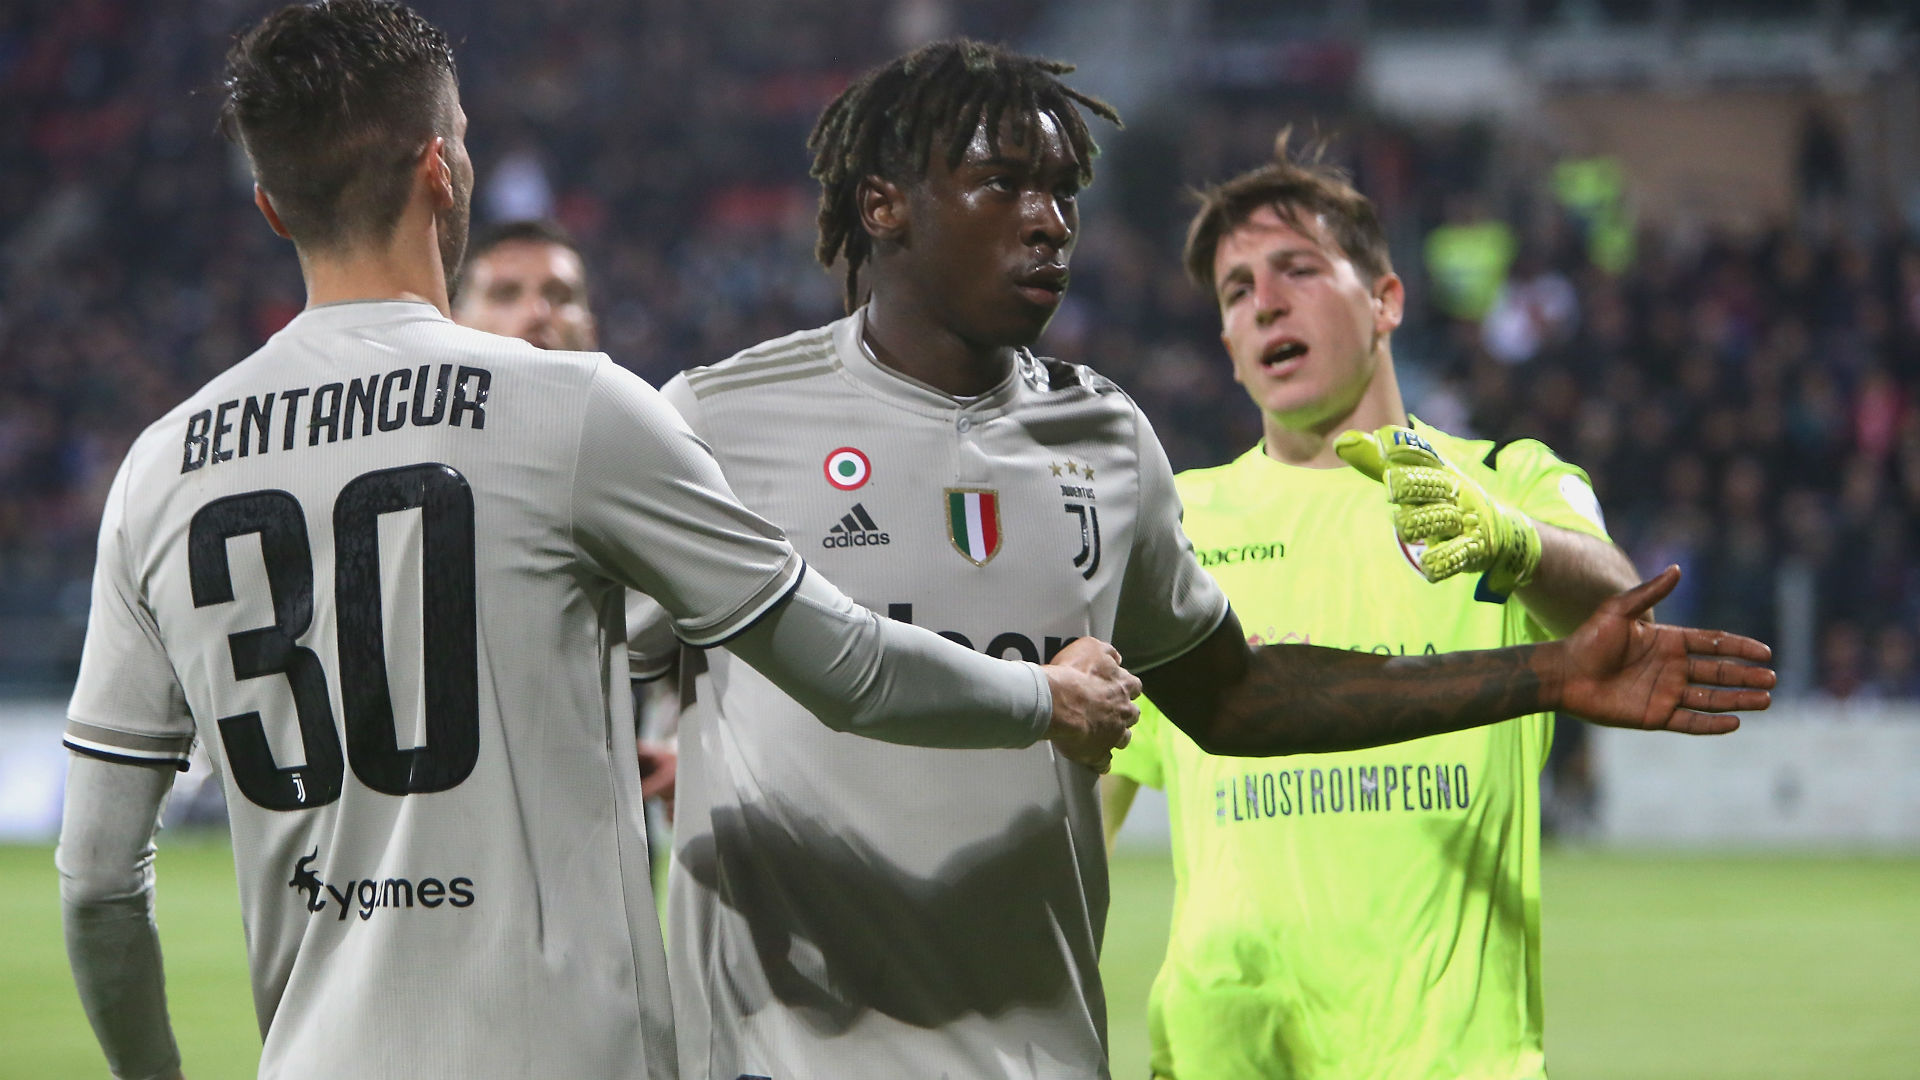 Bonucci's Kean comments 'disrespectful', says Yaya Toure